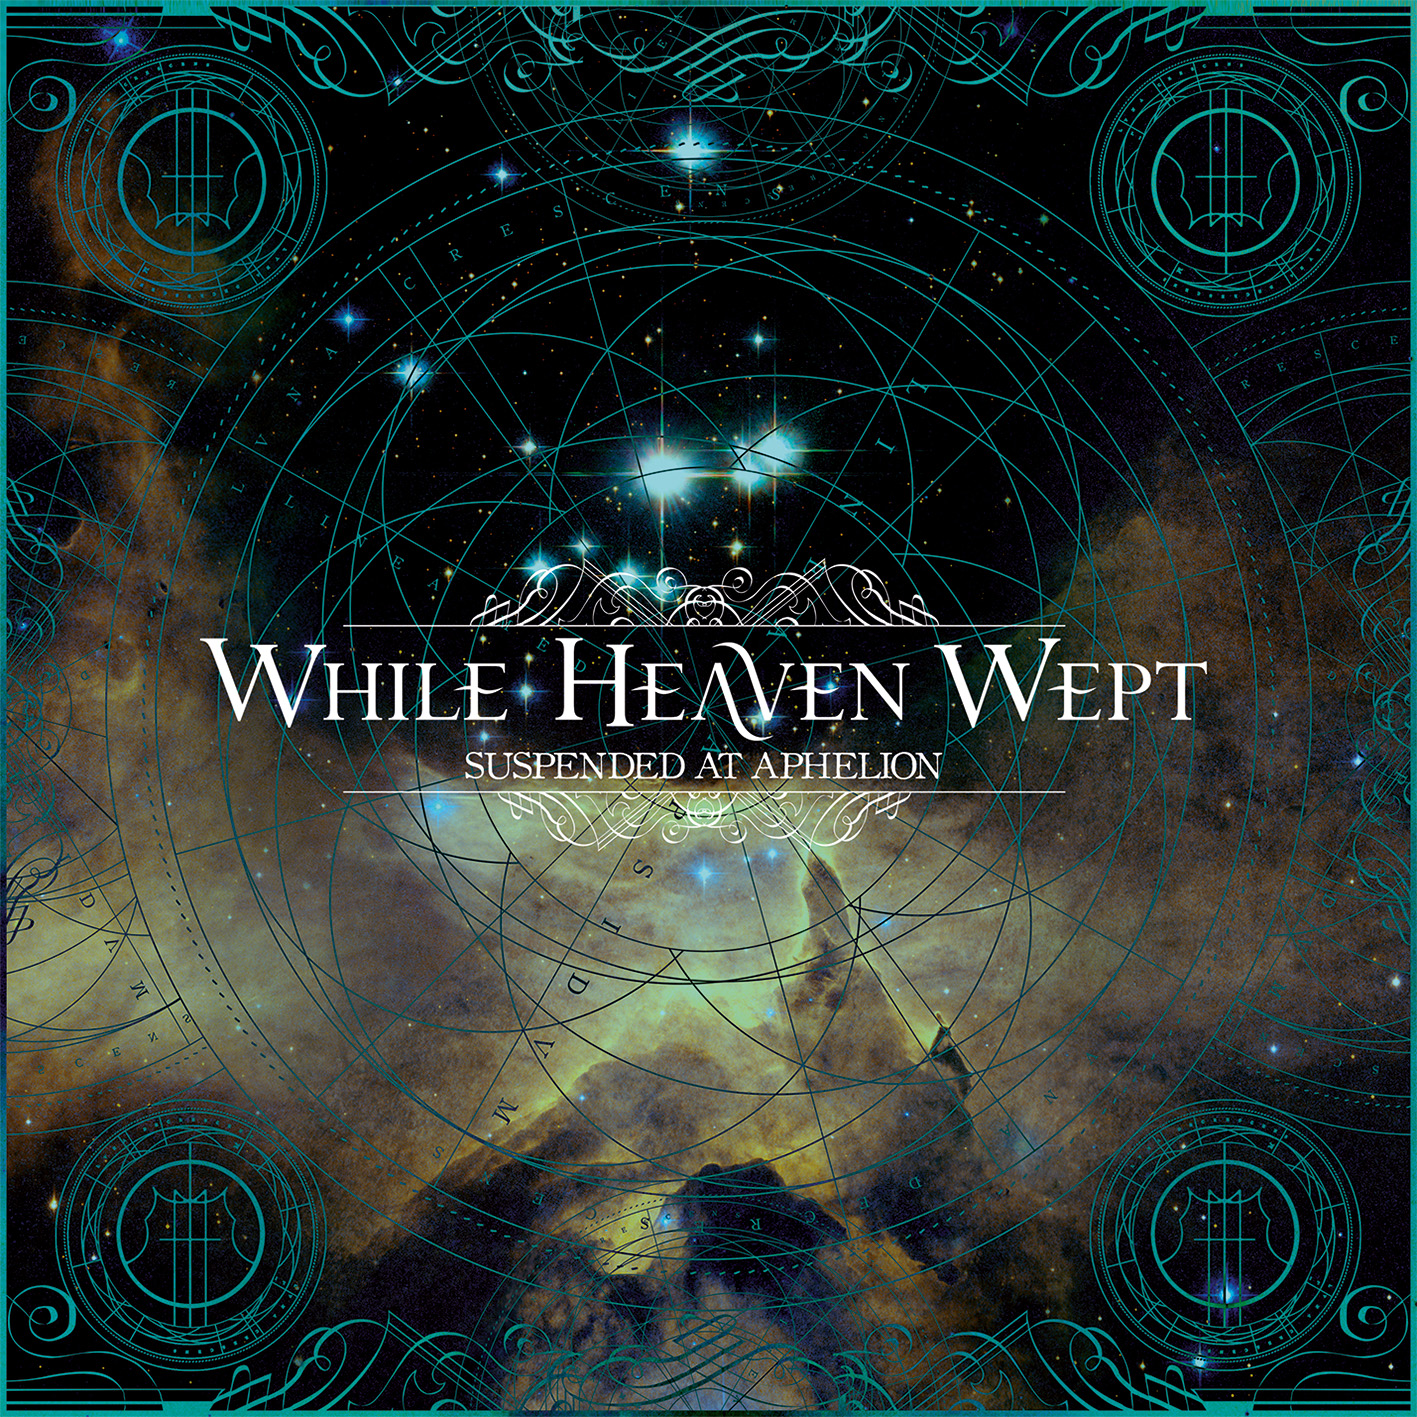 While Heaven Wept – Suspended at Aphelion Review